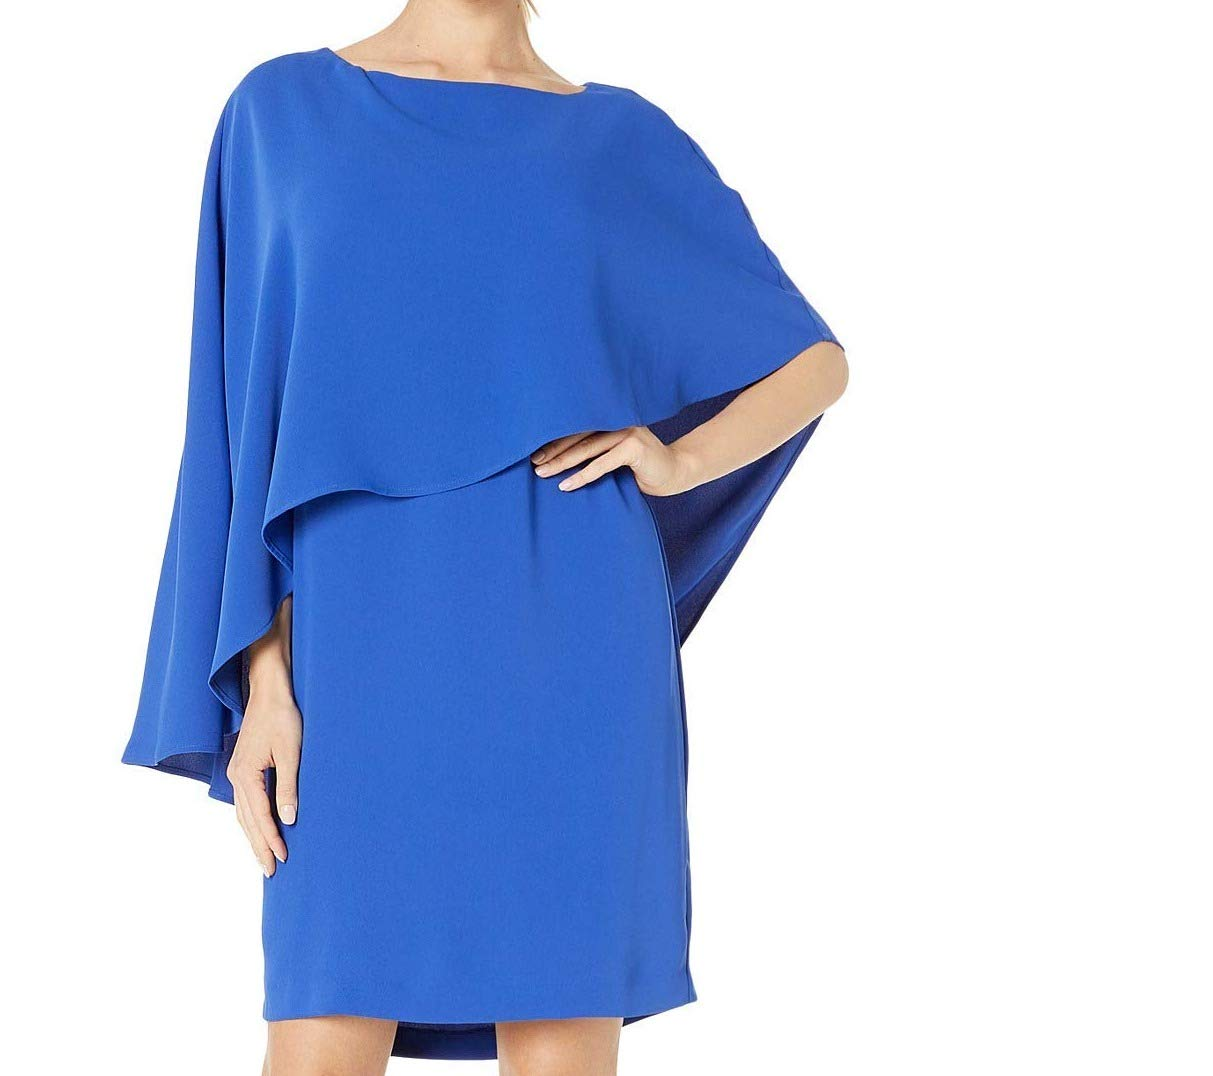 Available at Amazon: Trina Turk Women's Adore Cape Overlay Dress